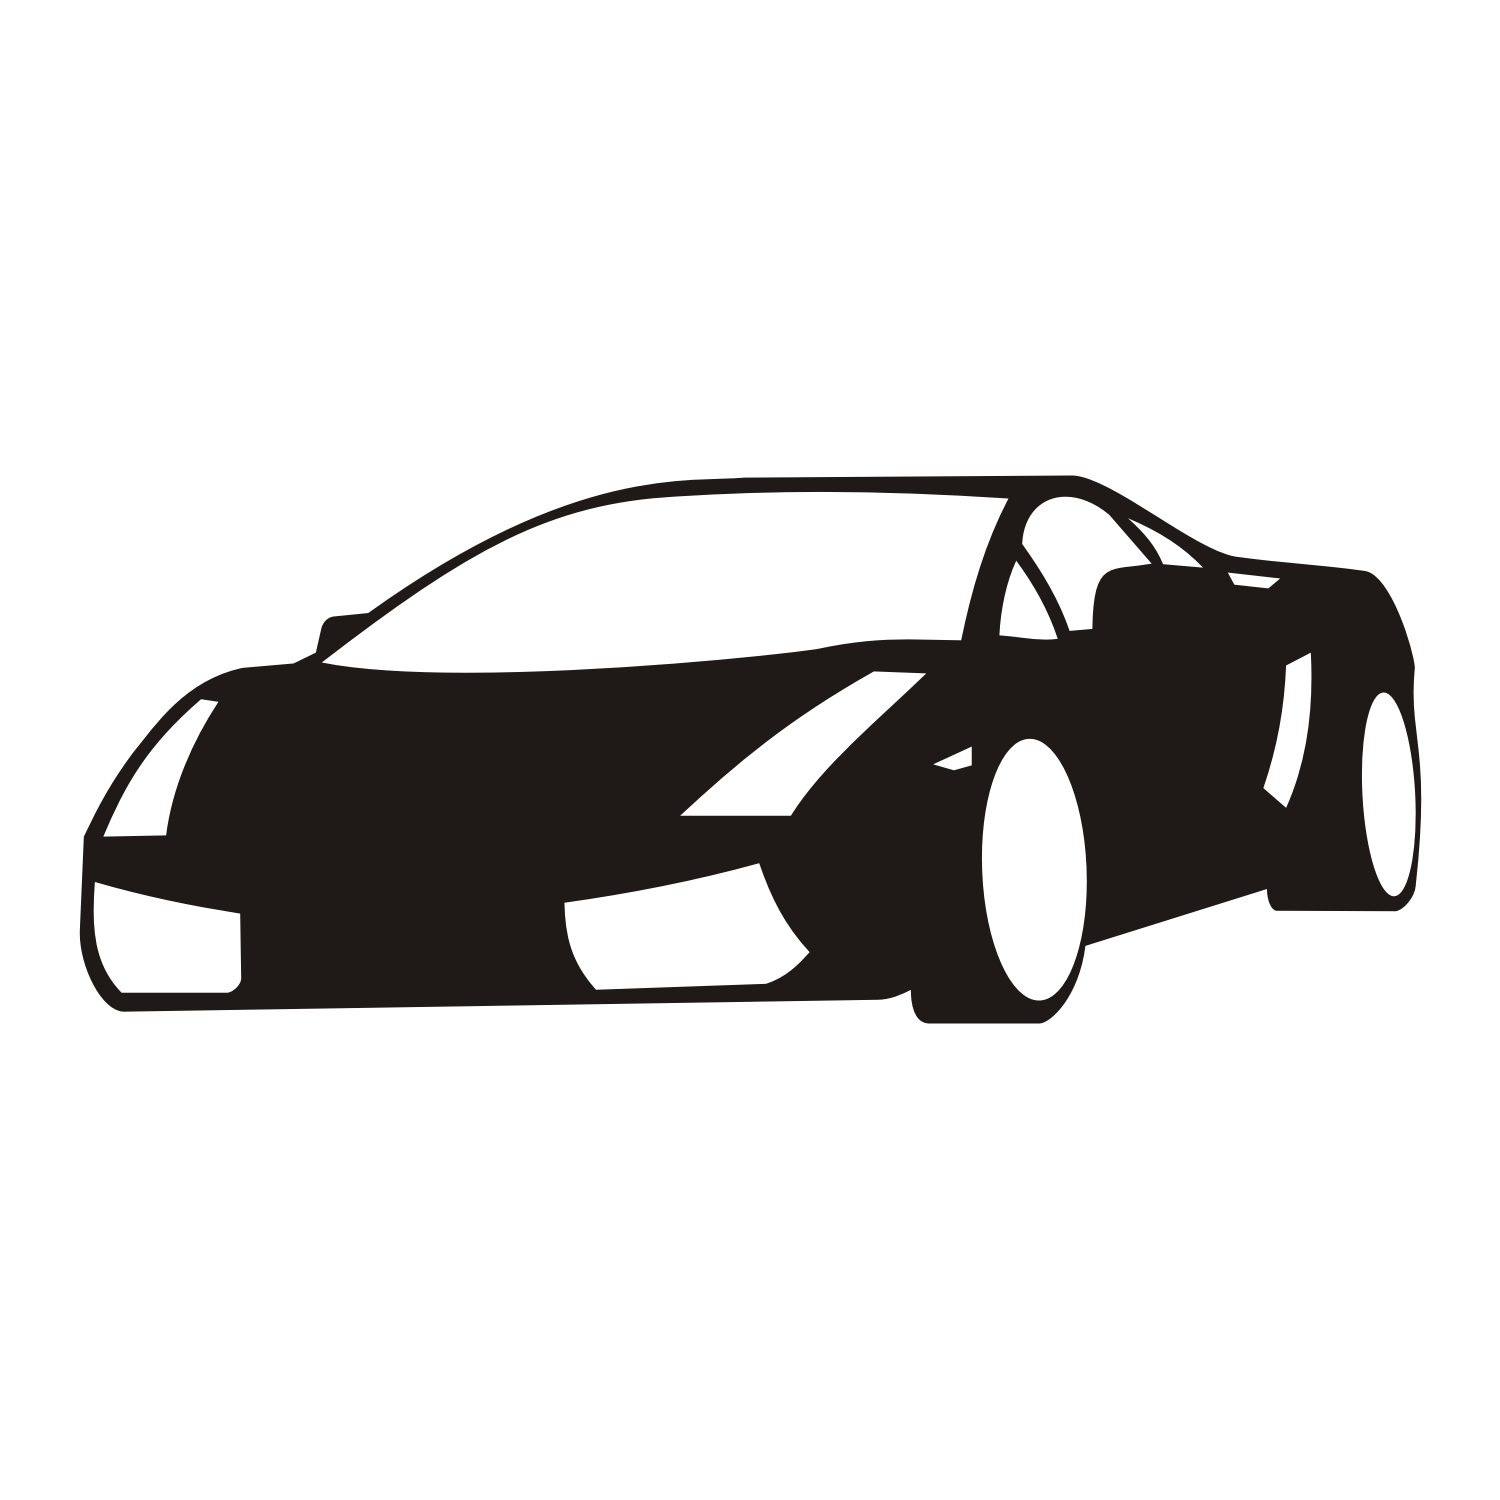 Sports Car Png Black And White Free Sports Car Black And White Png